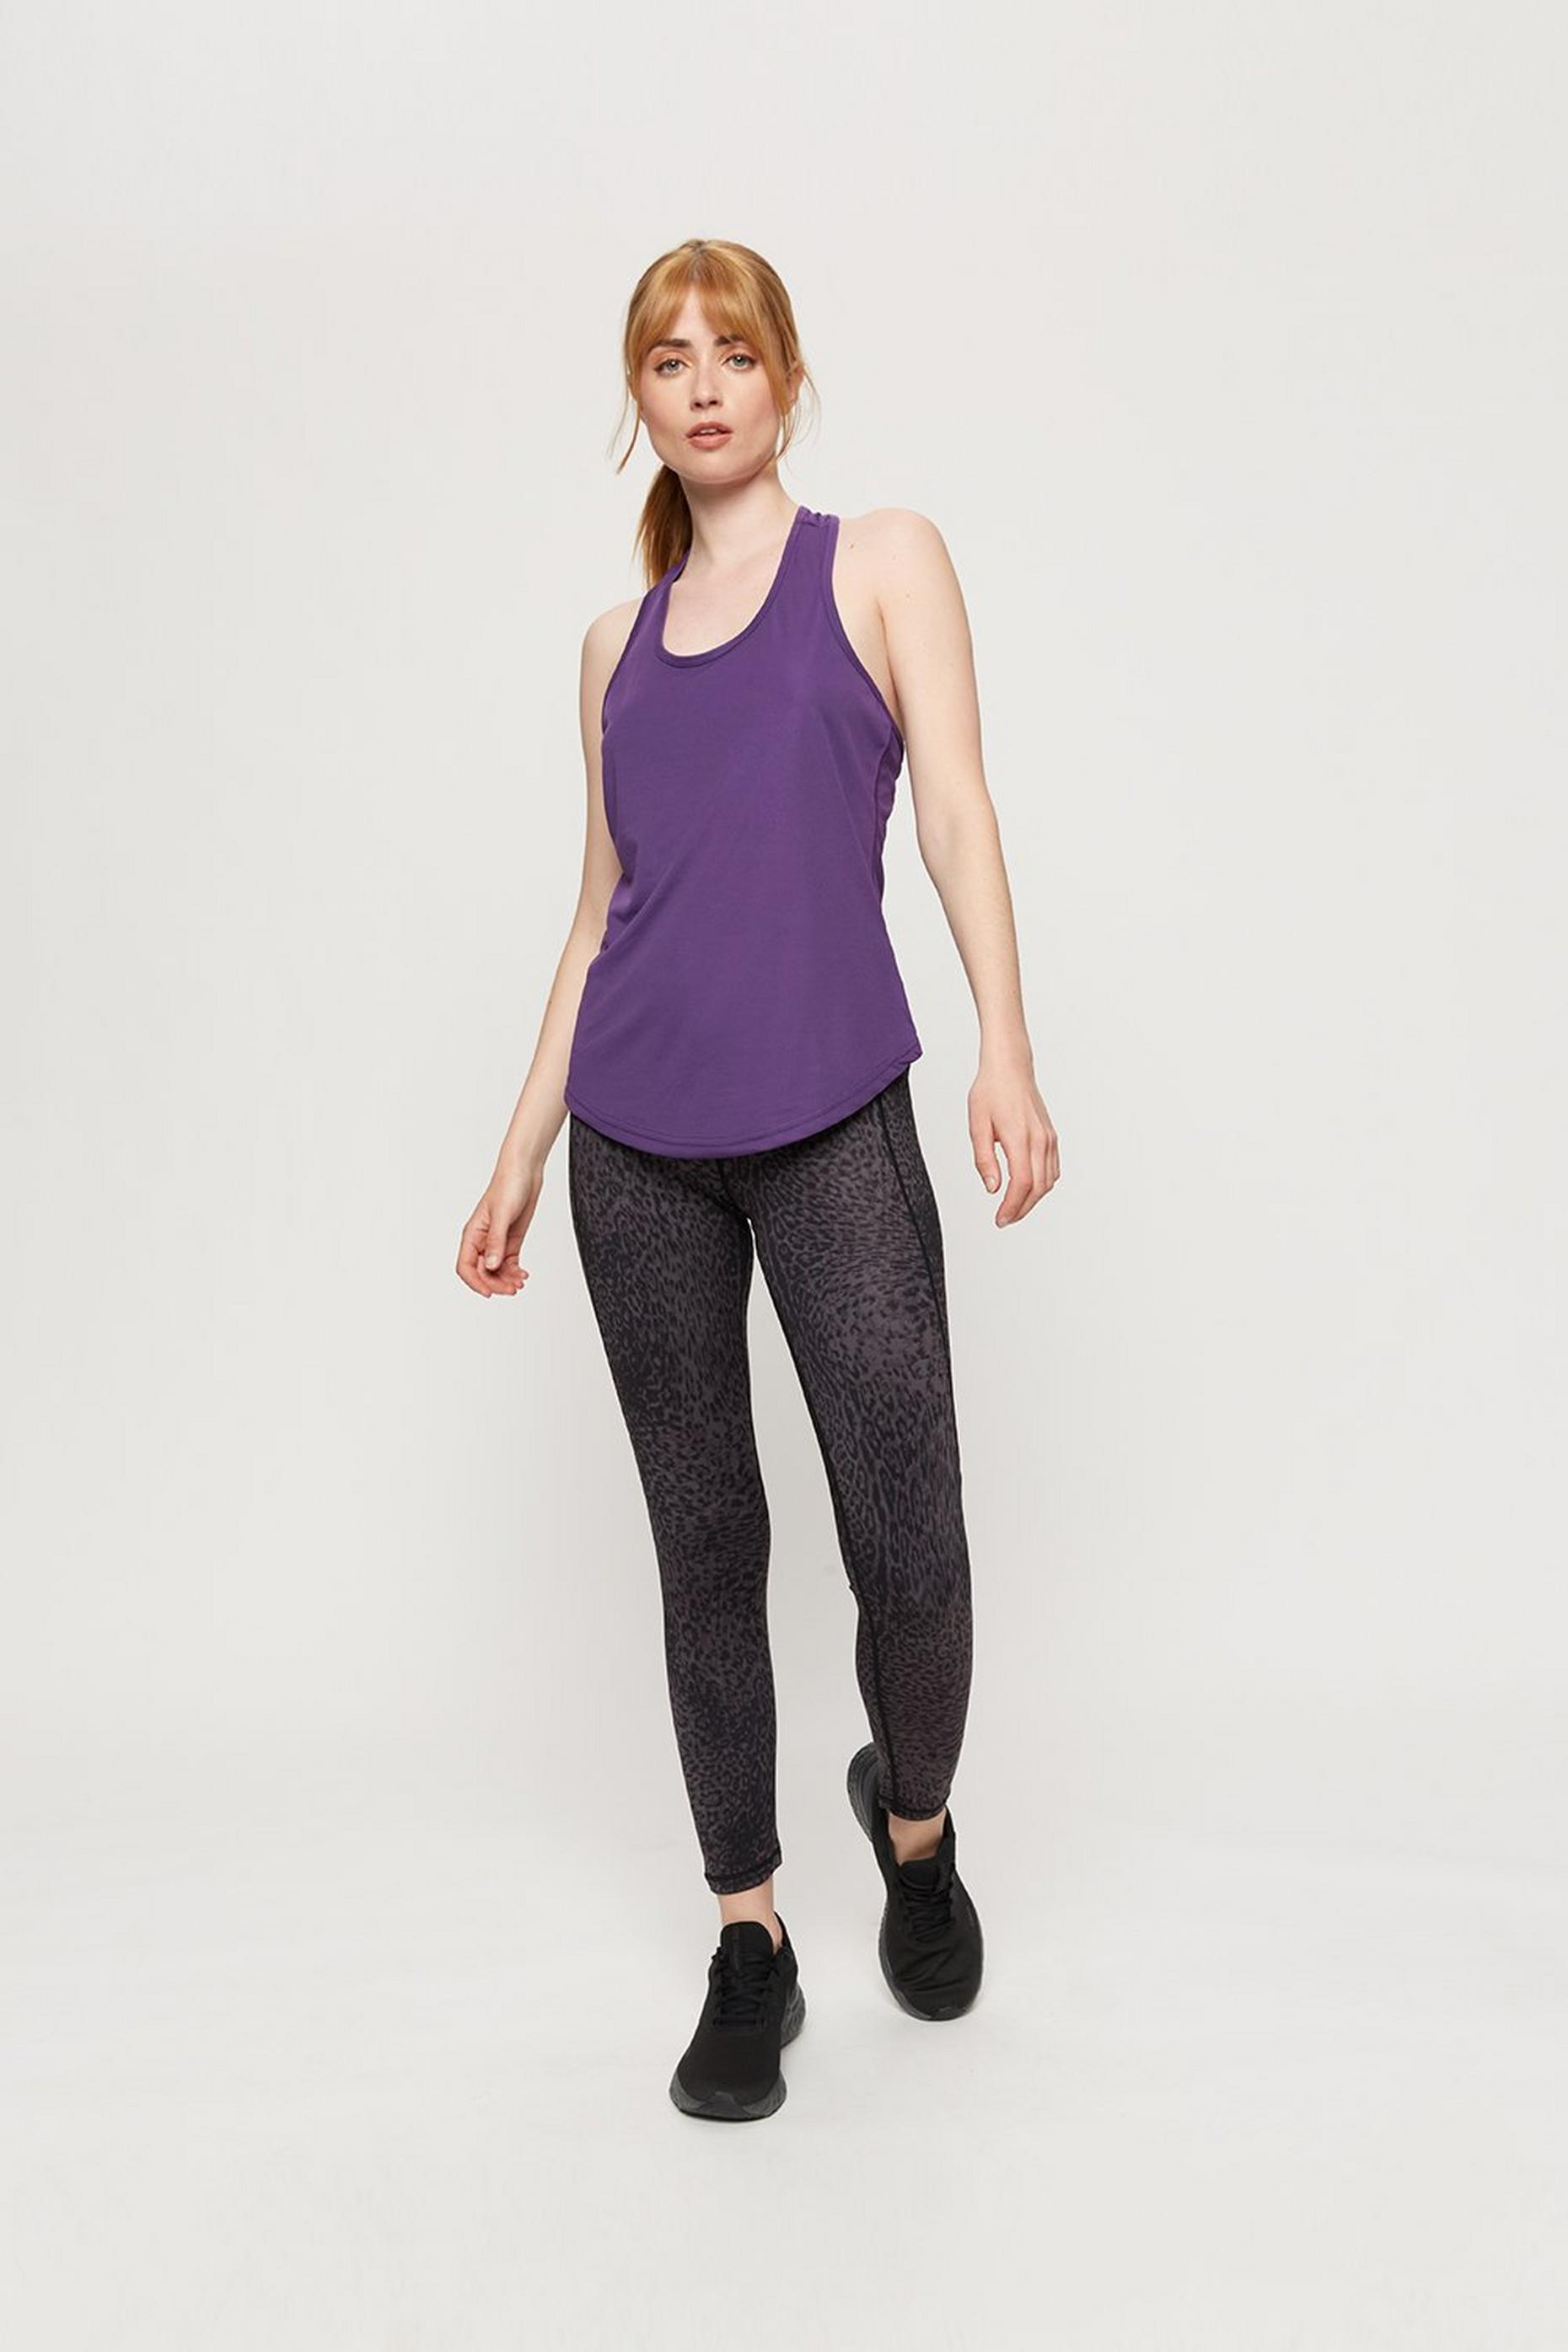 Purple Yoga Vest